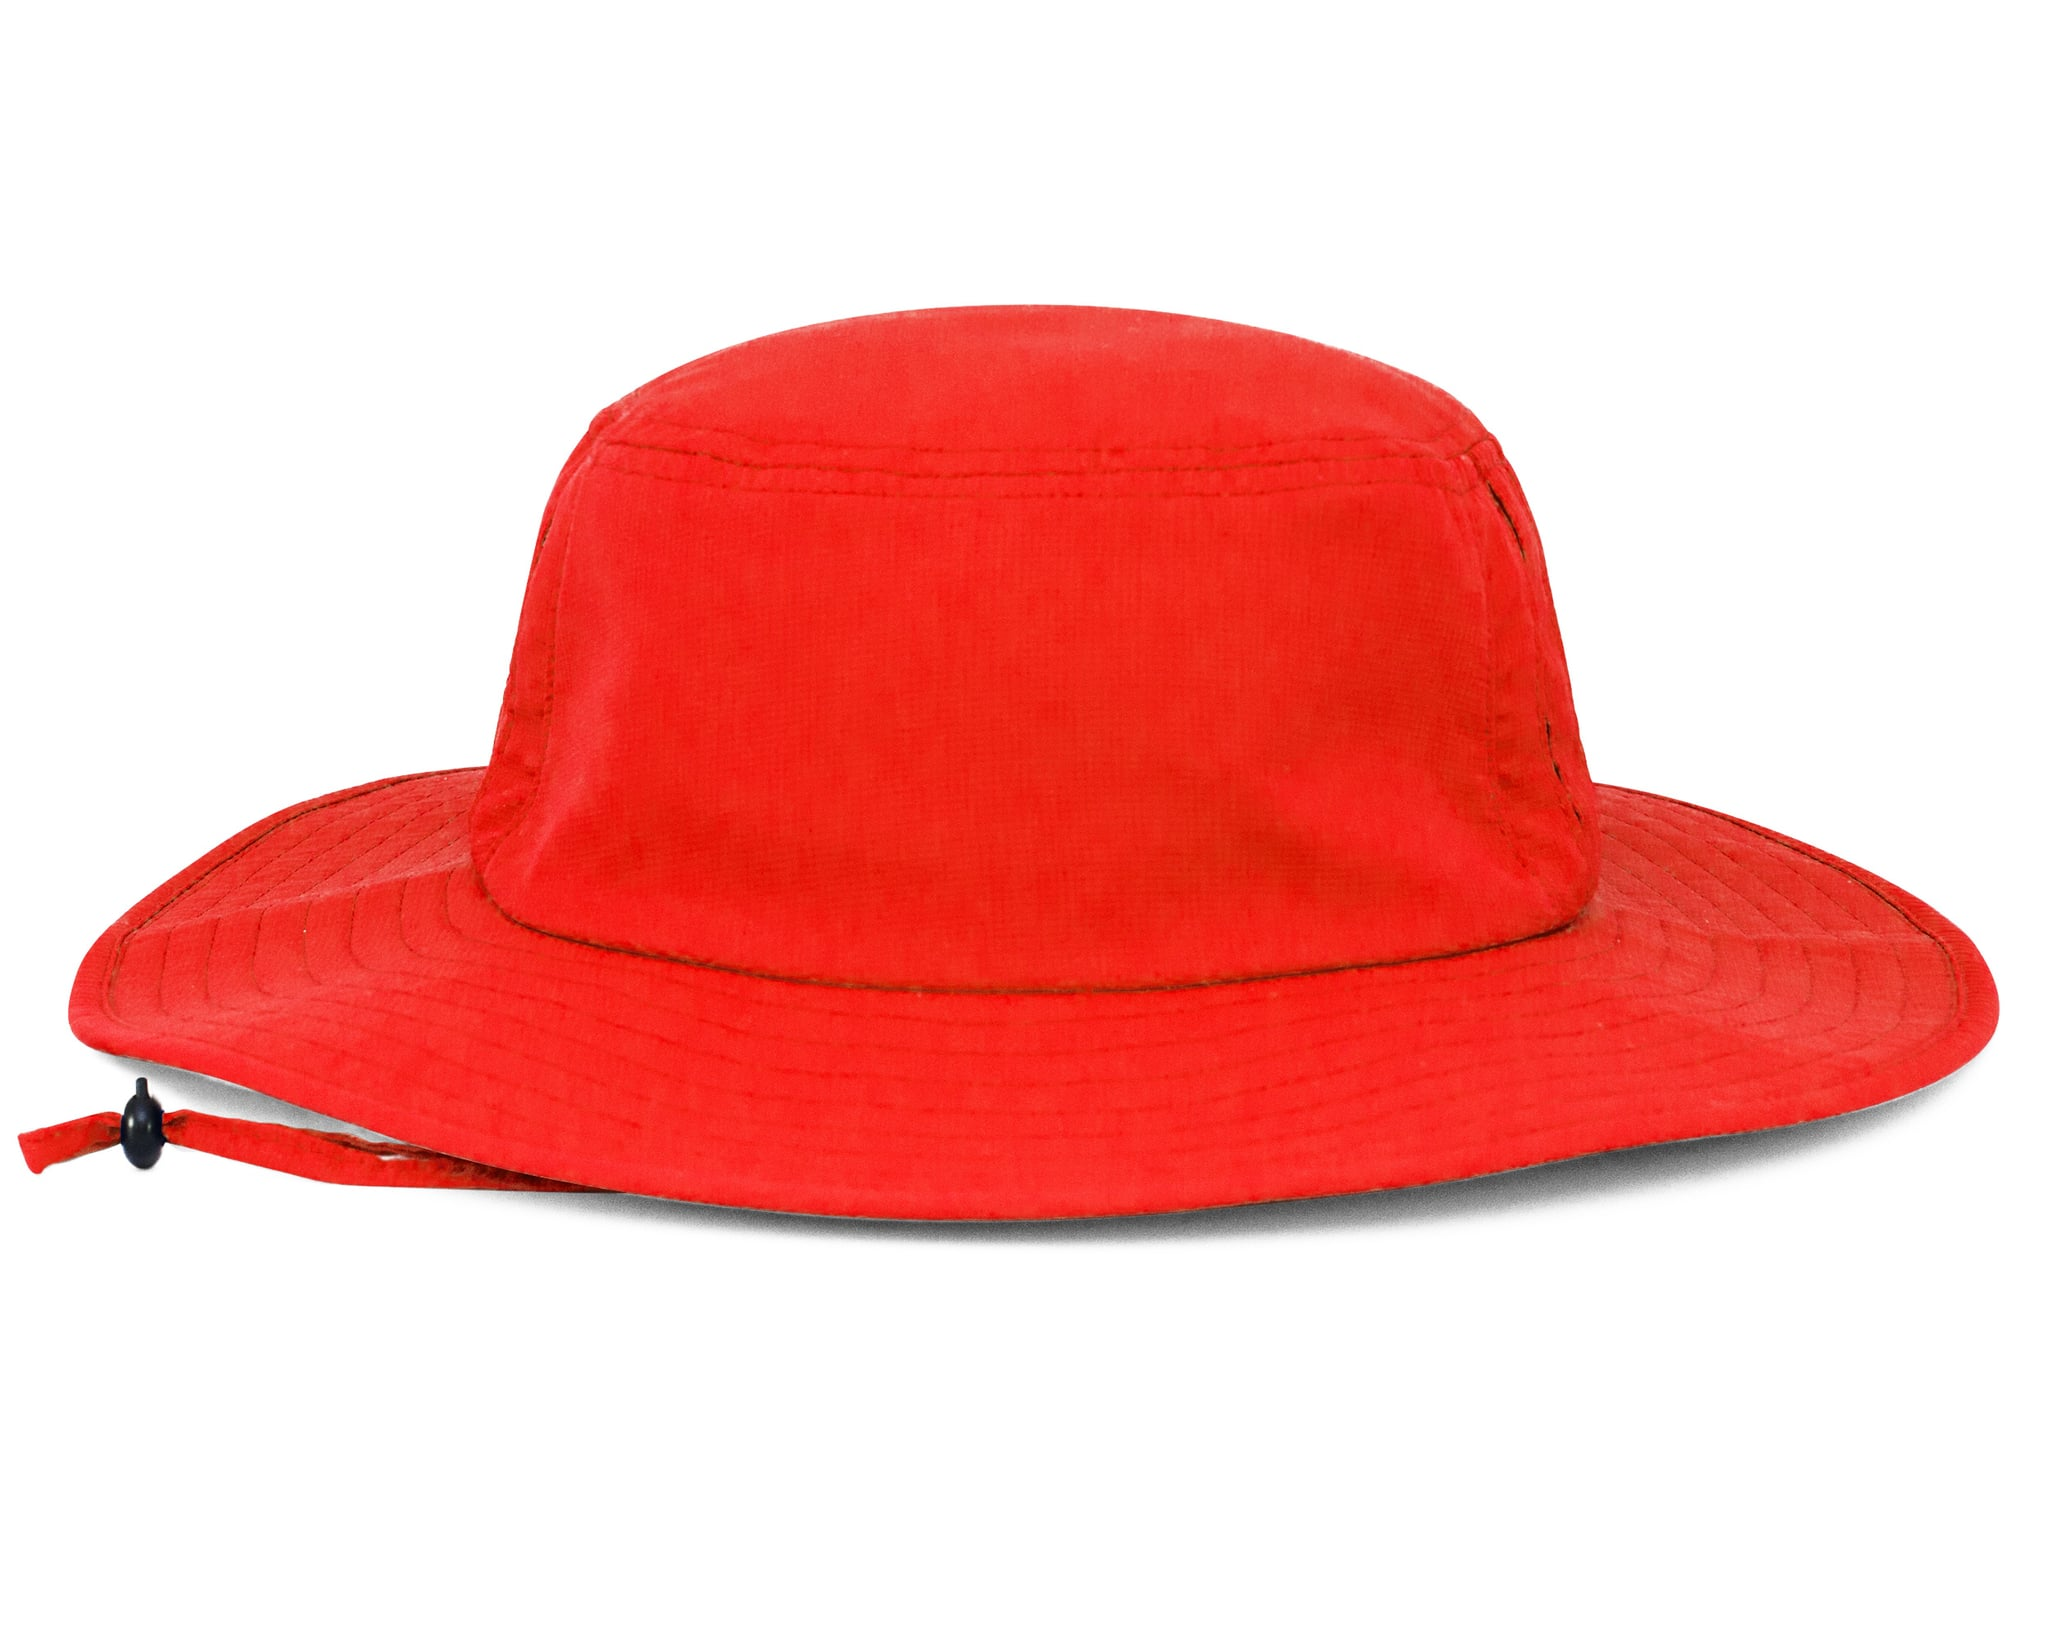 z1946-lightweight-boonie-hat-red.jpg d8171b4eebd